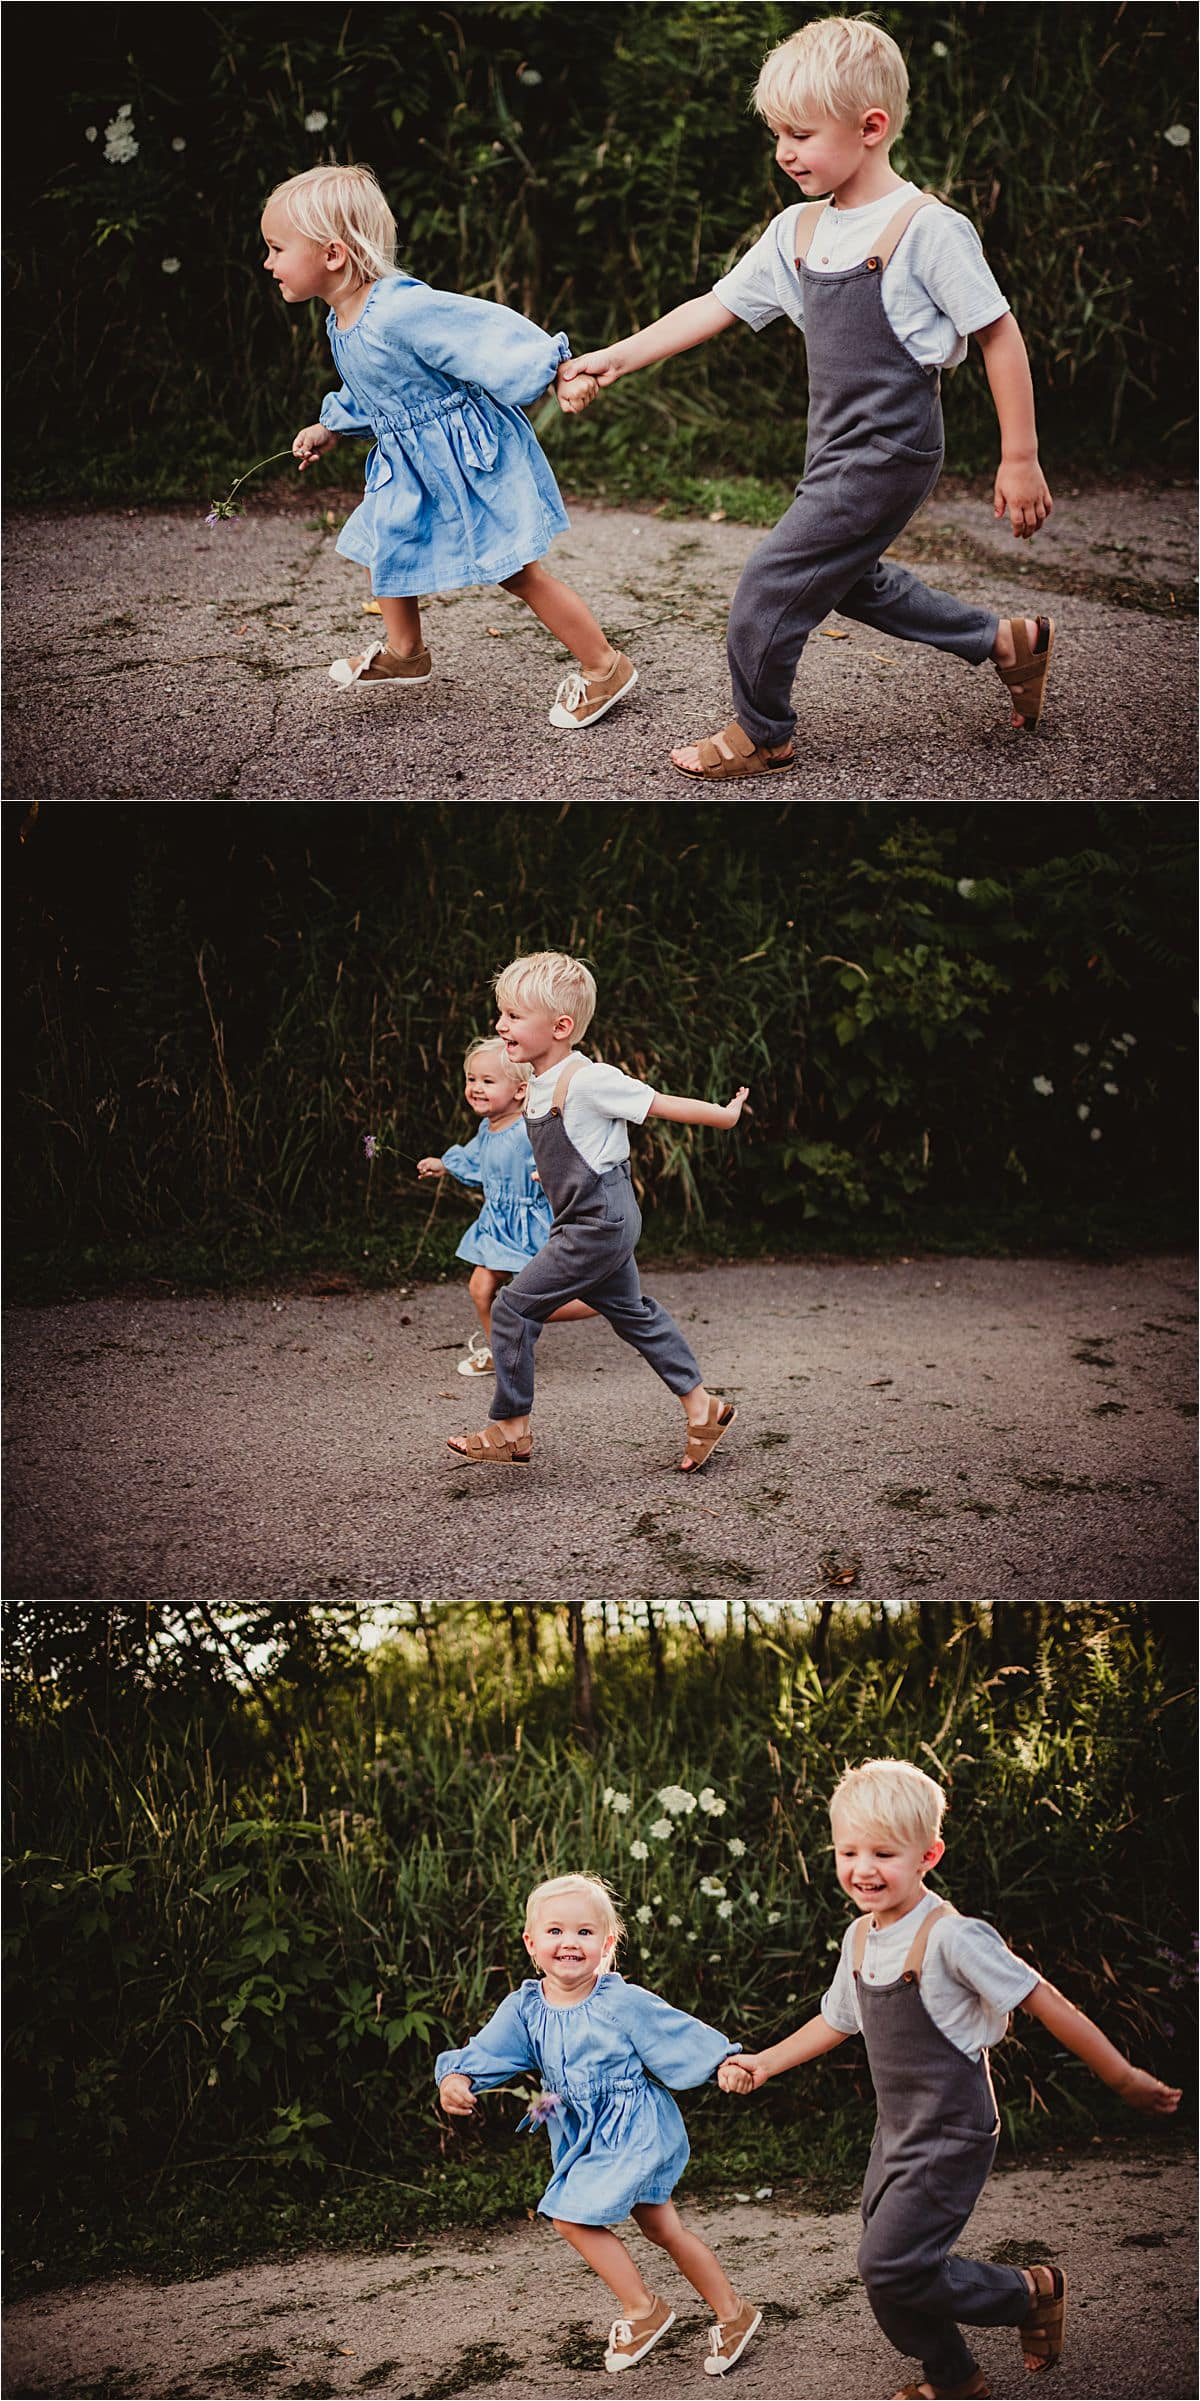 Brother and Sister Holding Hands Running